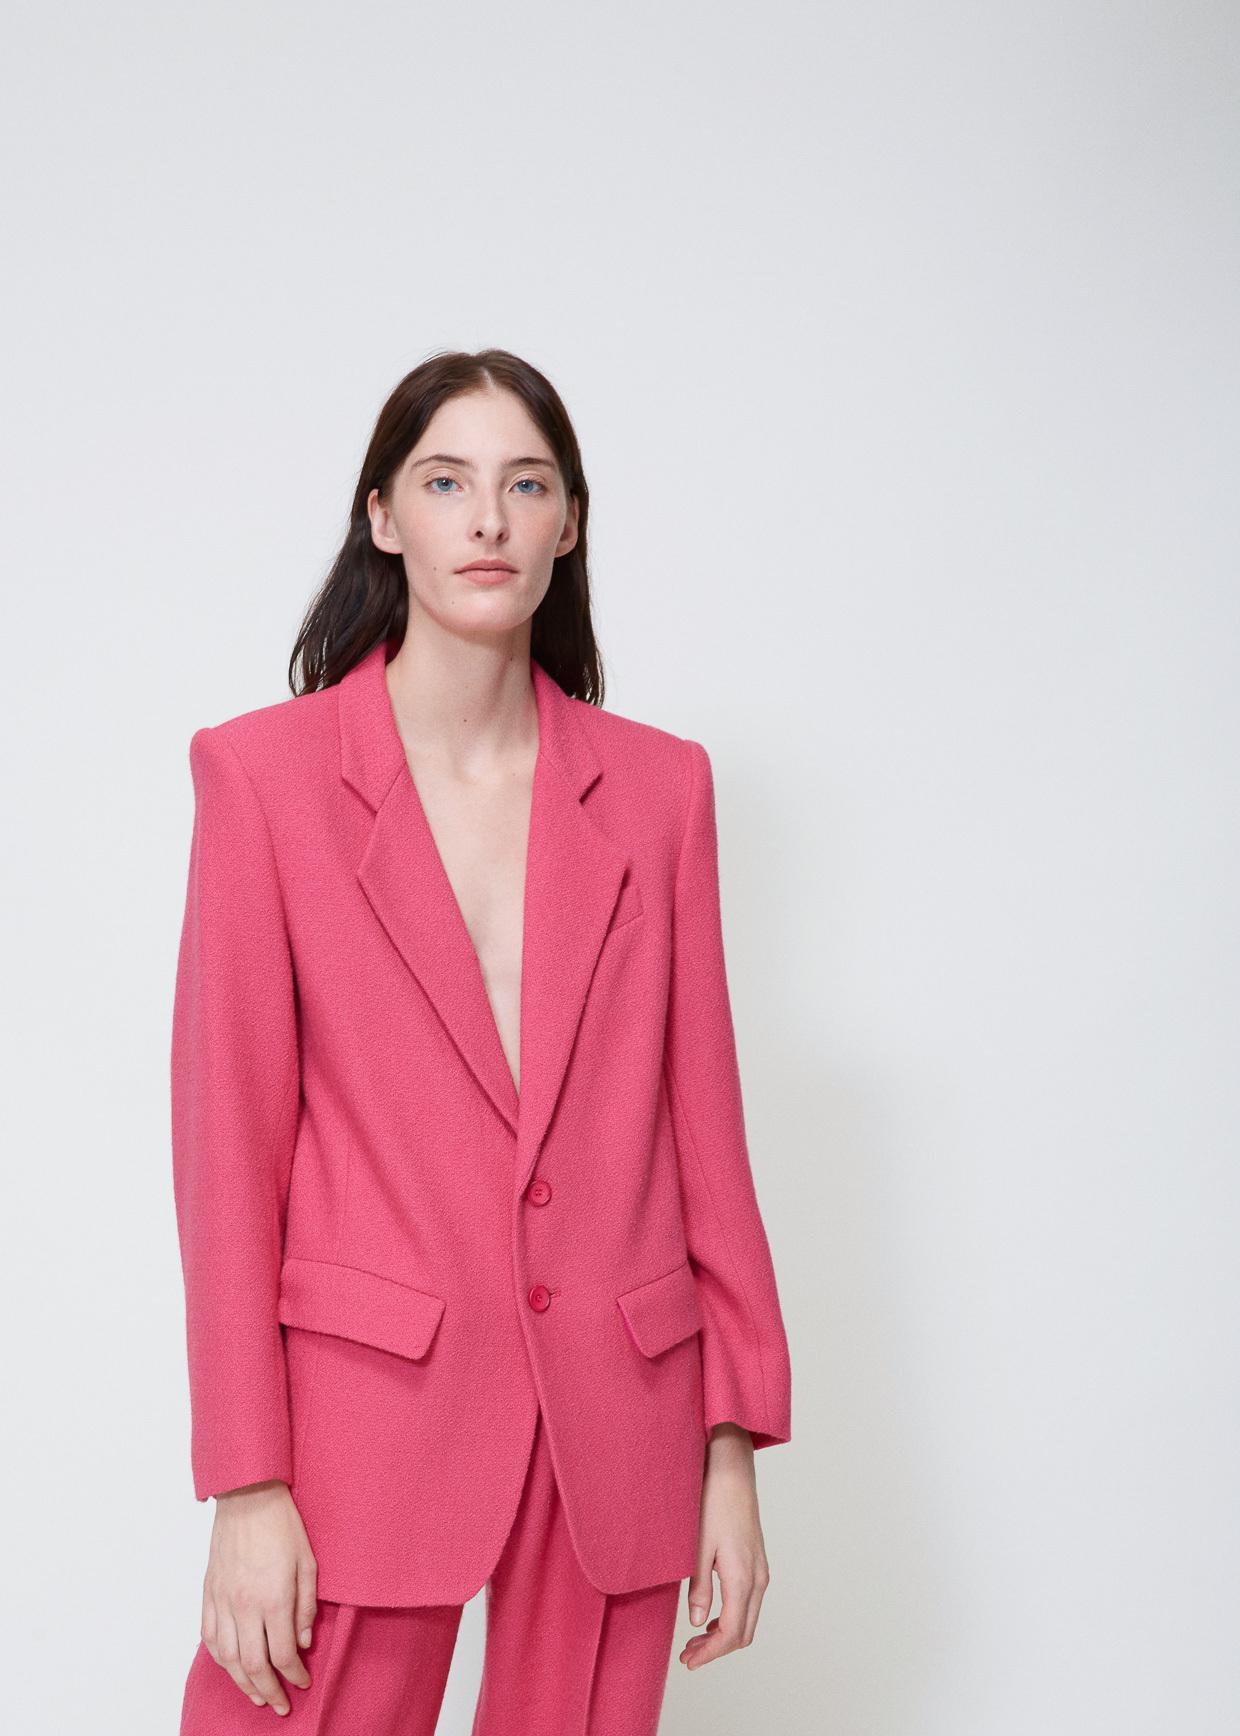 An eye-catching blazer constructed of metallic stretch twill with peaked shoulders, ruched 3/4-length sleeves, princess seams and a back peplum detail. The lapel has a hook-and-eye closure in the front.